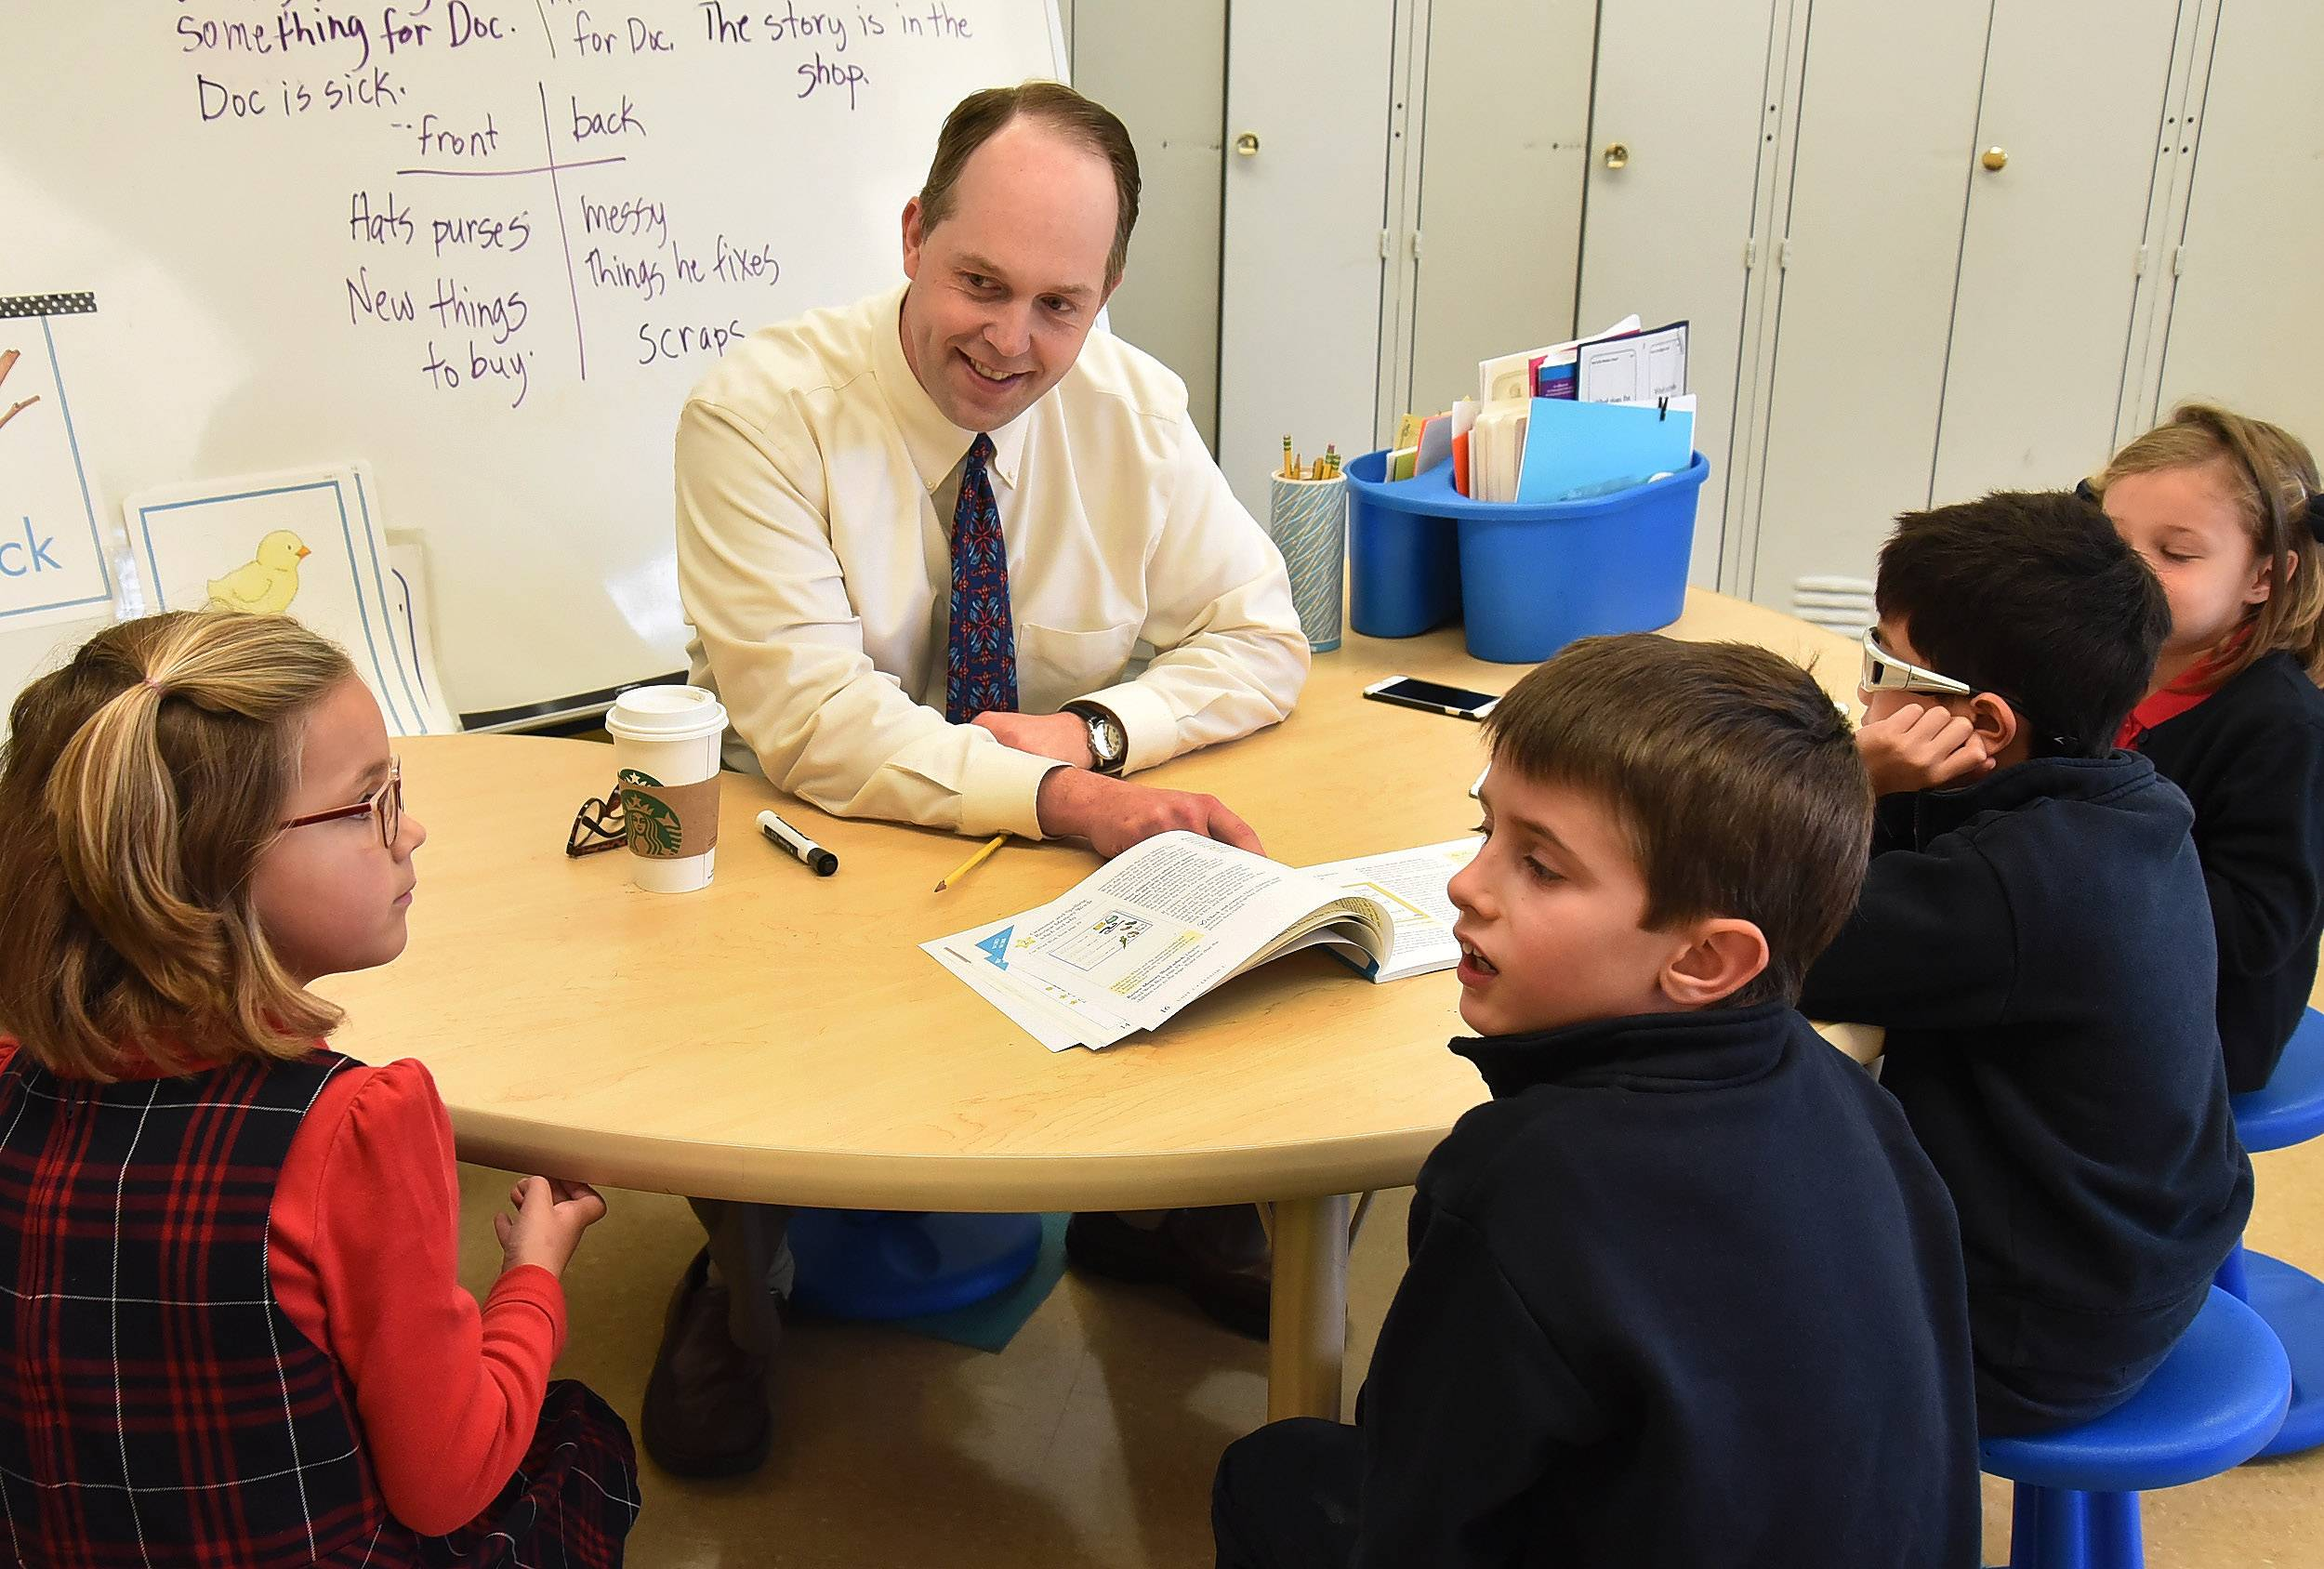 Archdiocese of Chicago Superintendent of Schools Jim Rigg visits with first- and second-graders Thursday at St. Thomas of Villanova school in Palatine.